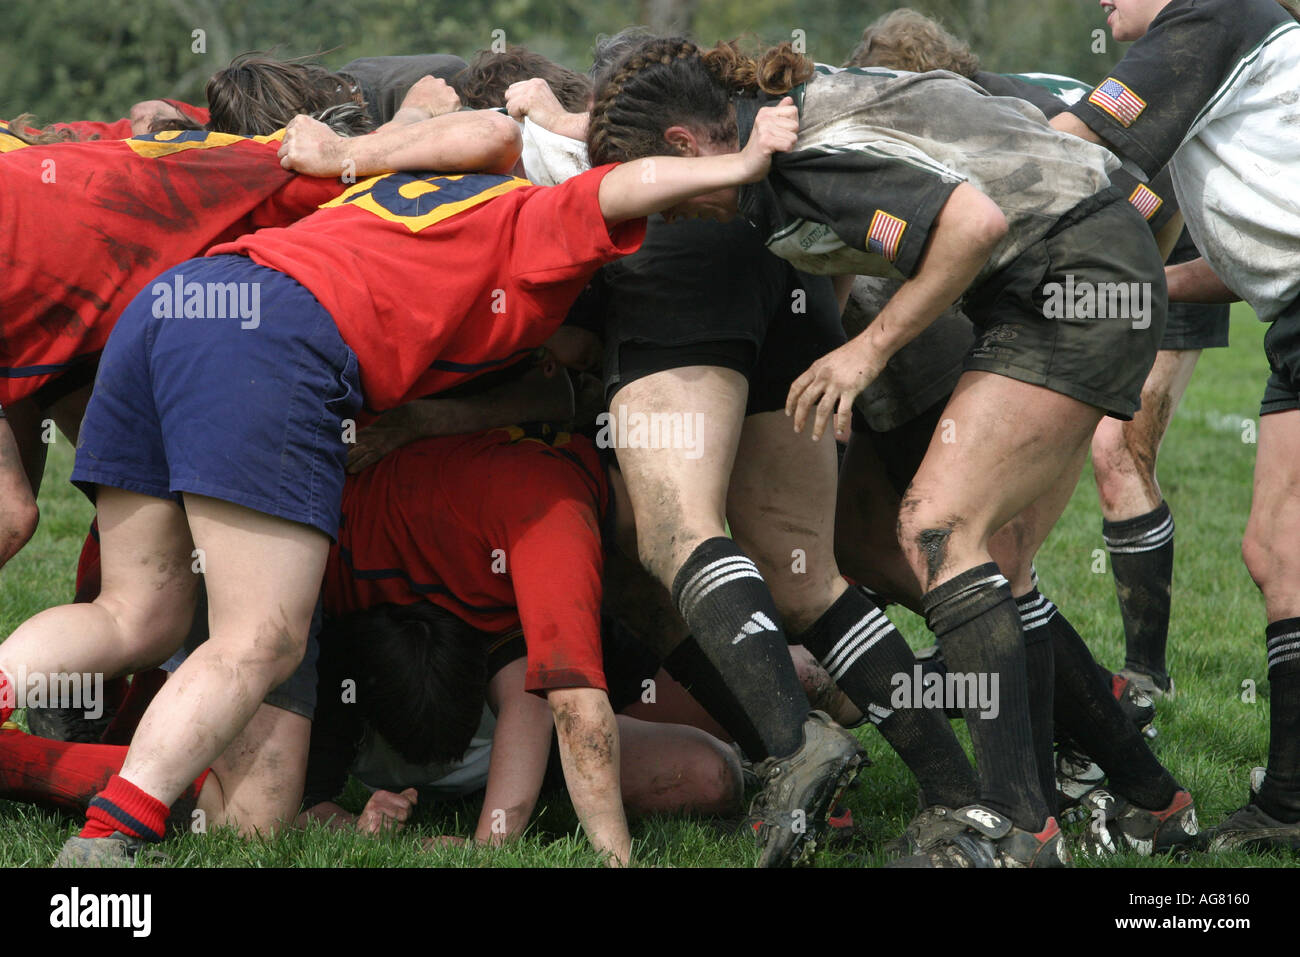 A women s rugby game in action during the scrum as players fight for the ball at a game in Oregon - Stock Image